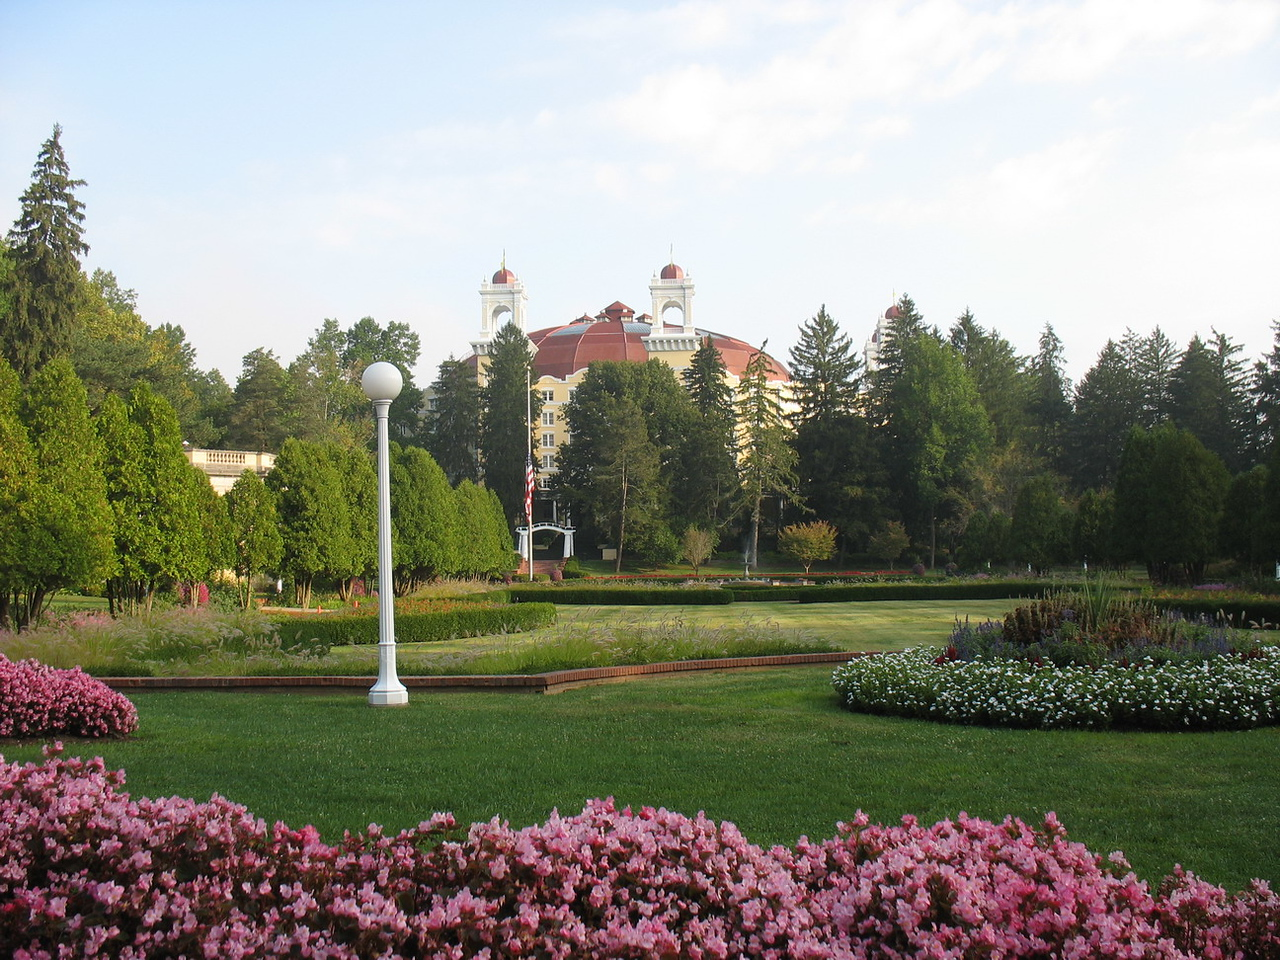 The lovely grounds around this spectacular hotel made it an ideal location for this event.